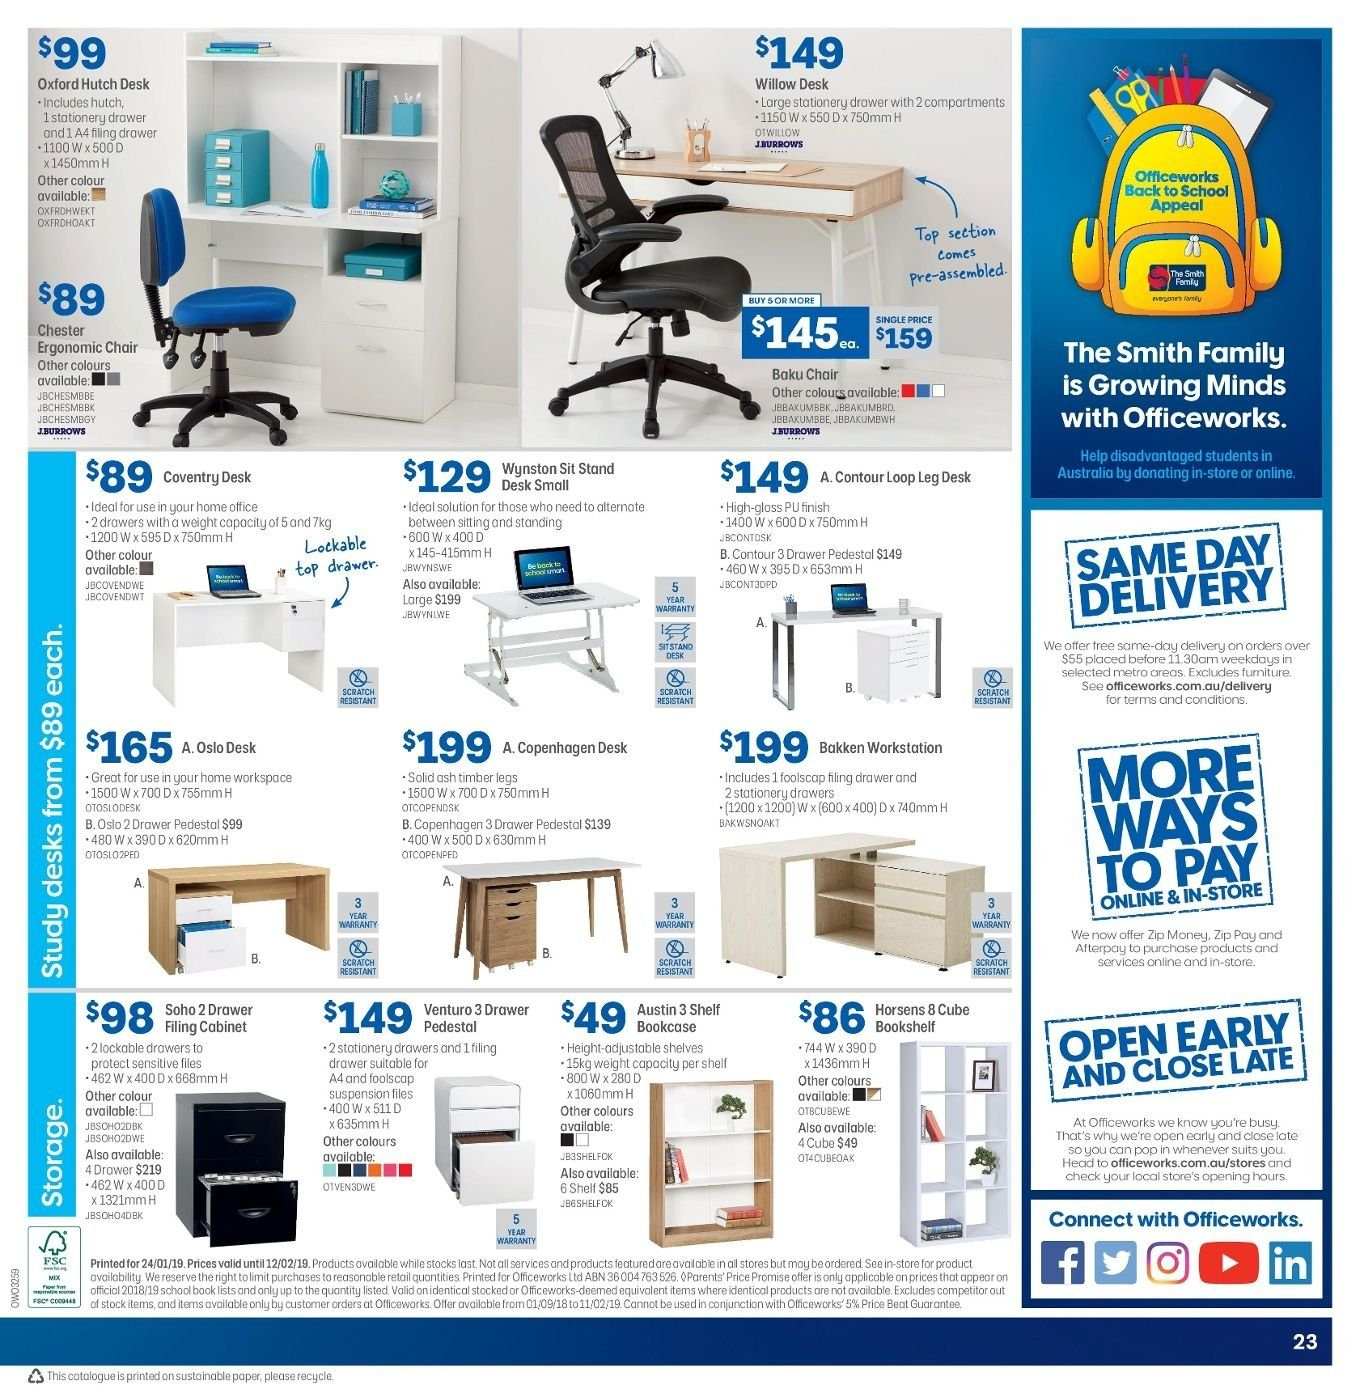 Officeworks Catalogue Jun 2019 Page 28 - Www imagez co